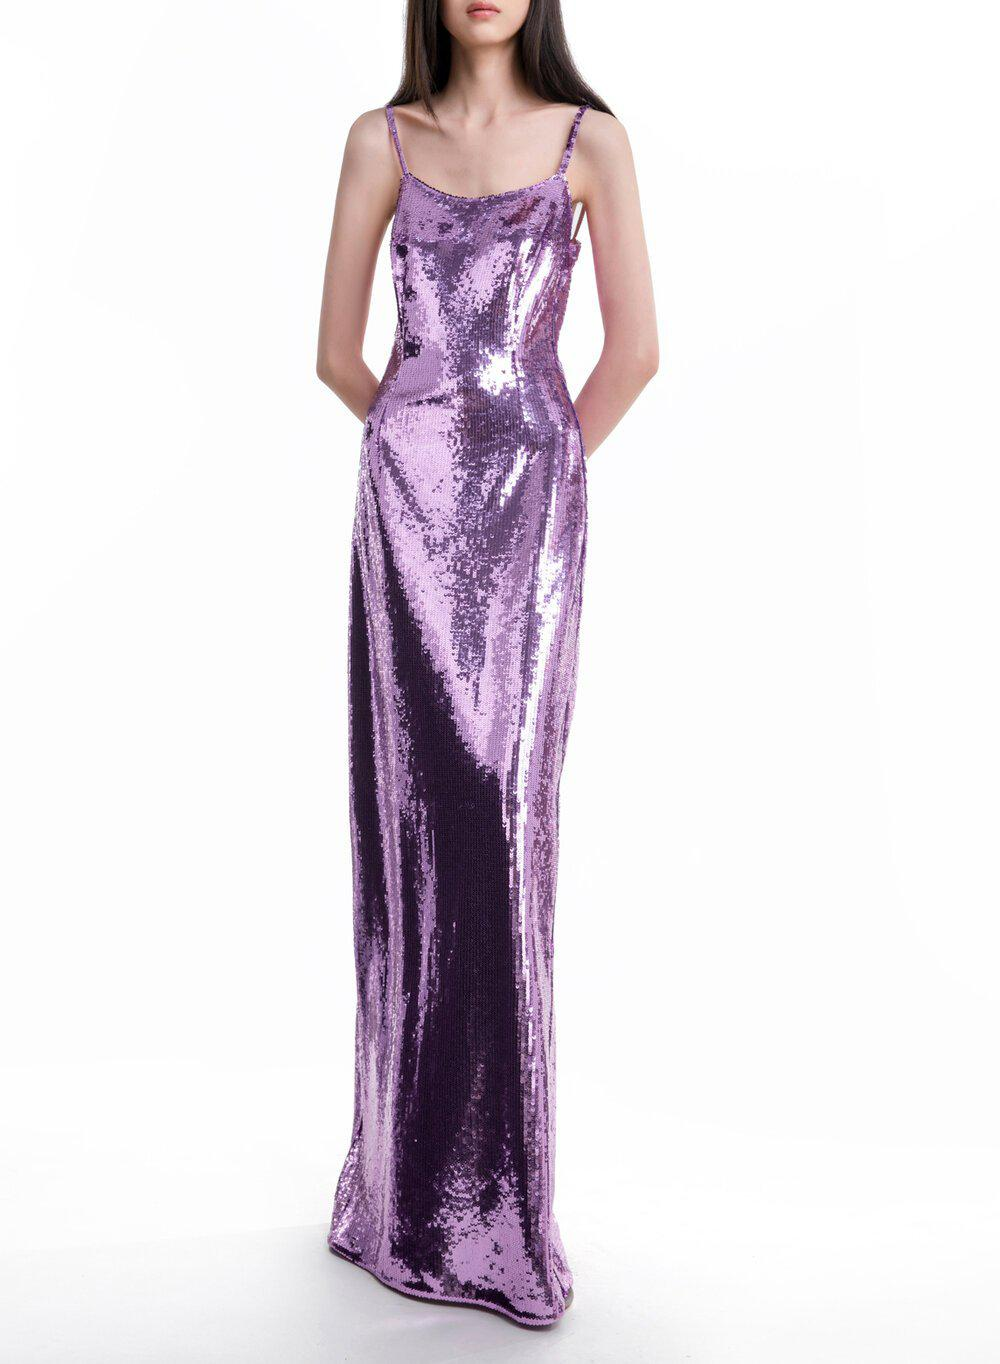 AURORA GOWN LILAC TULLE 4